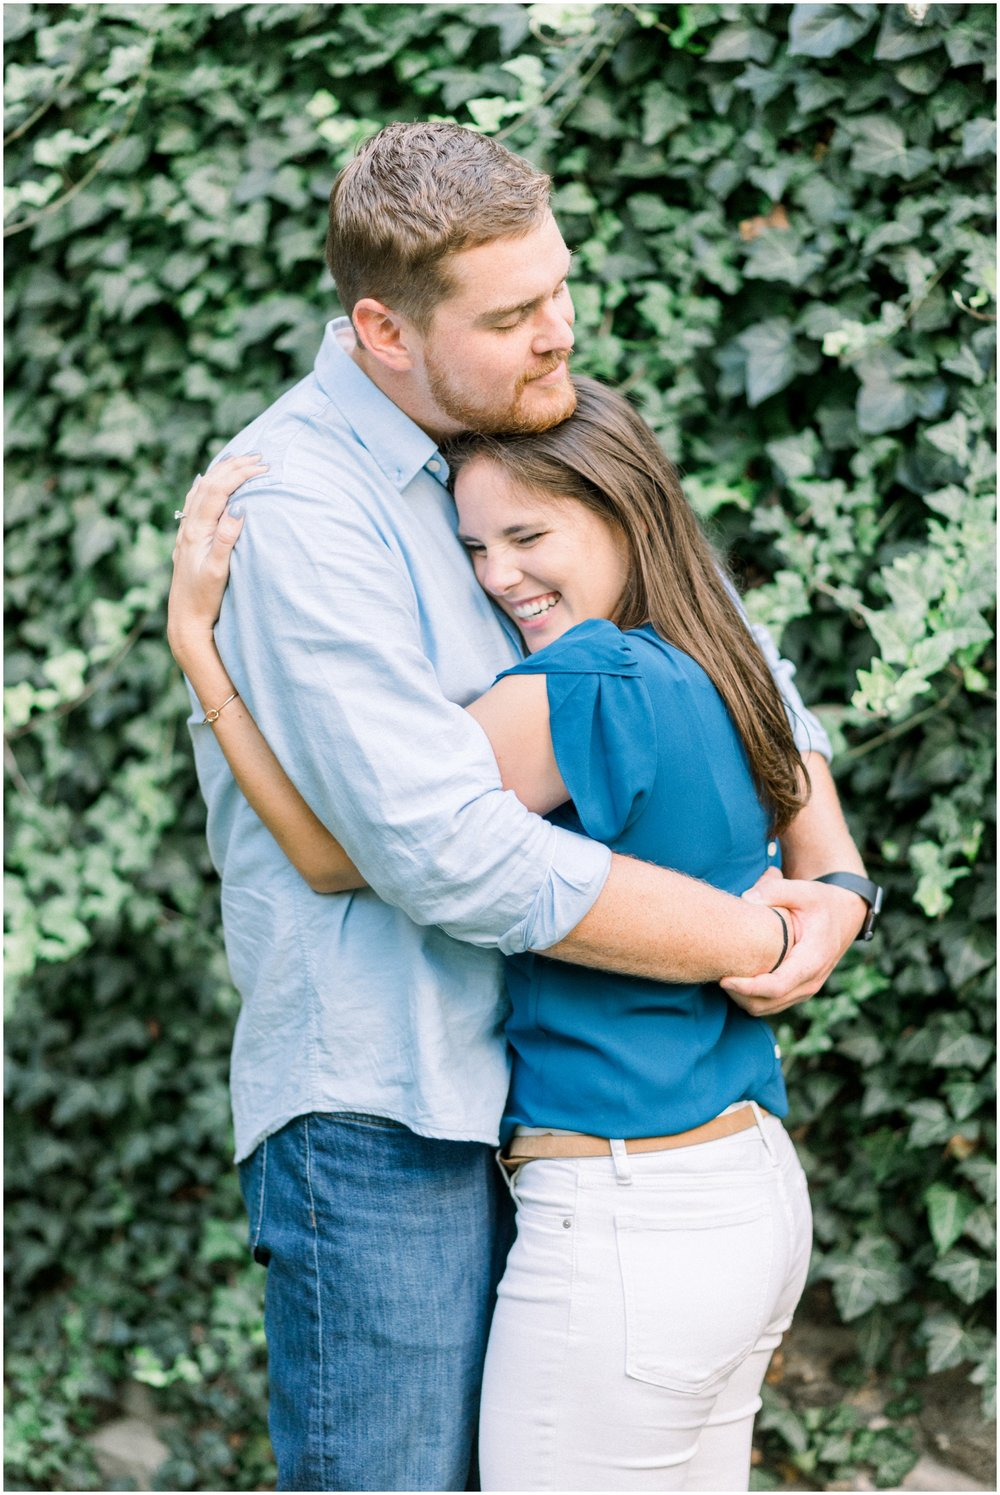 Summer Engagement Session at Hunting Hill Mansion - Krista Brackin Photography_0046.jpg